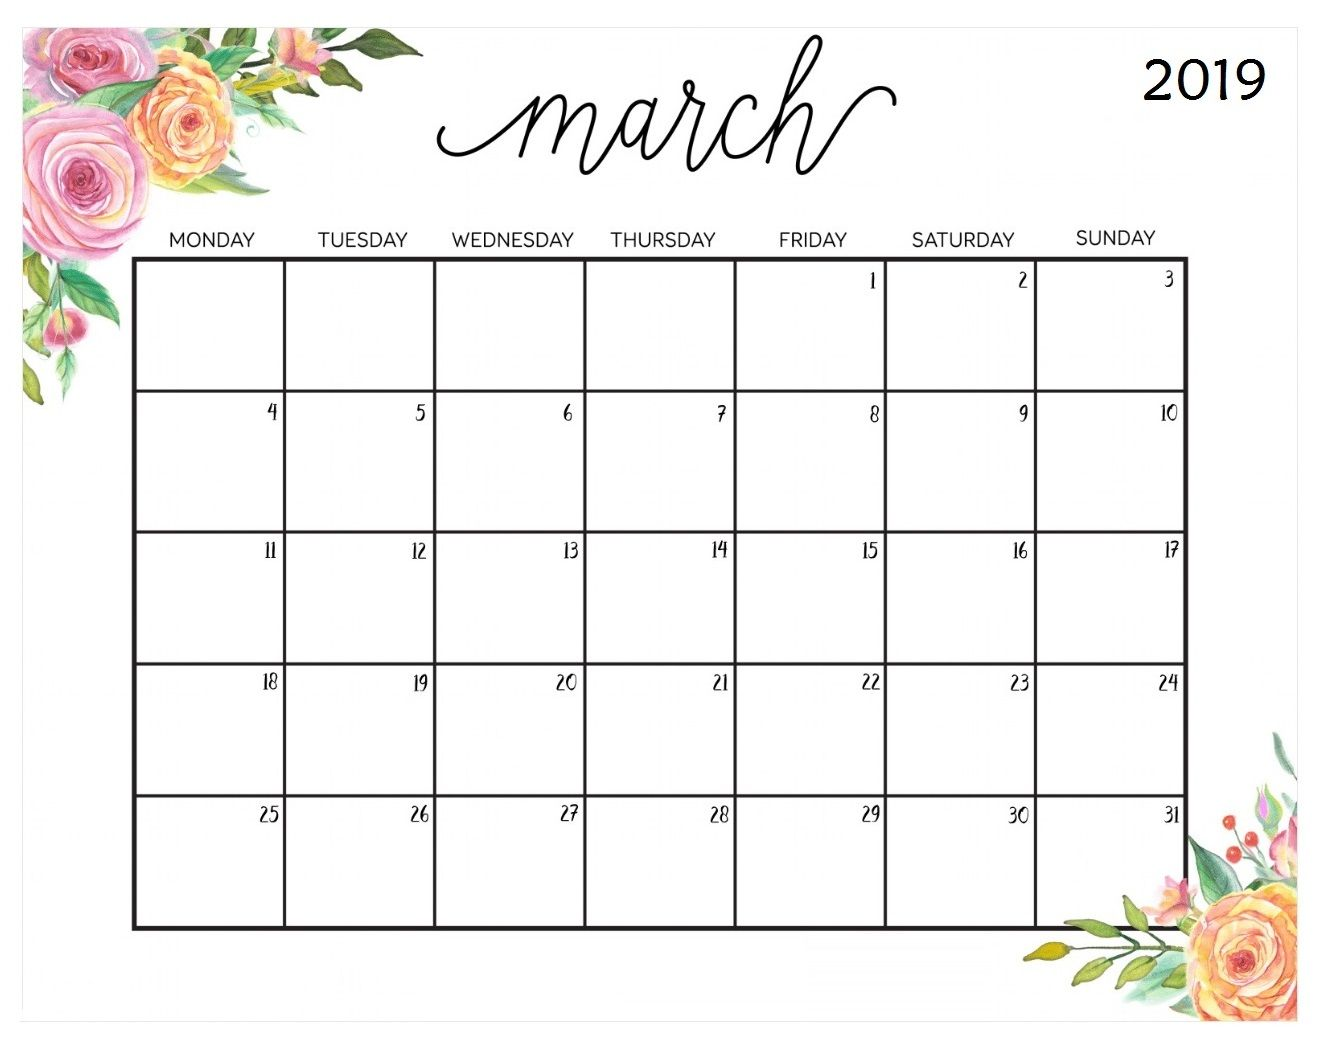 March 2019 Desk Calendar Design August Calendar July Calendar